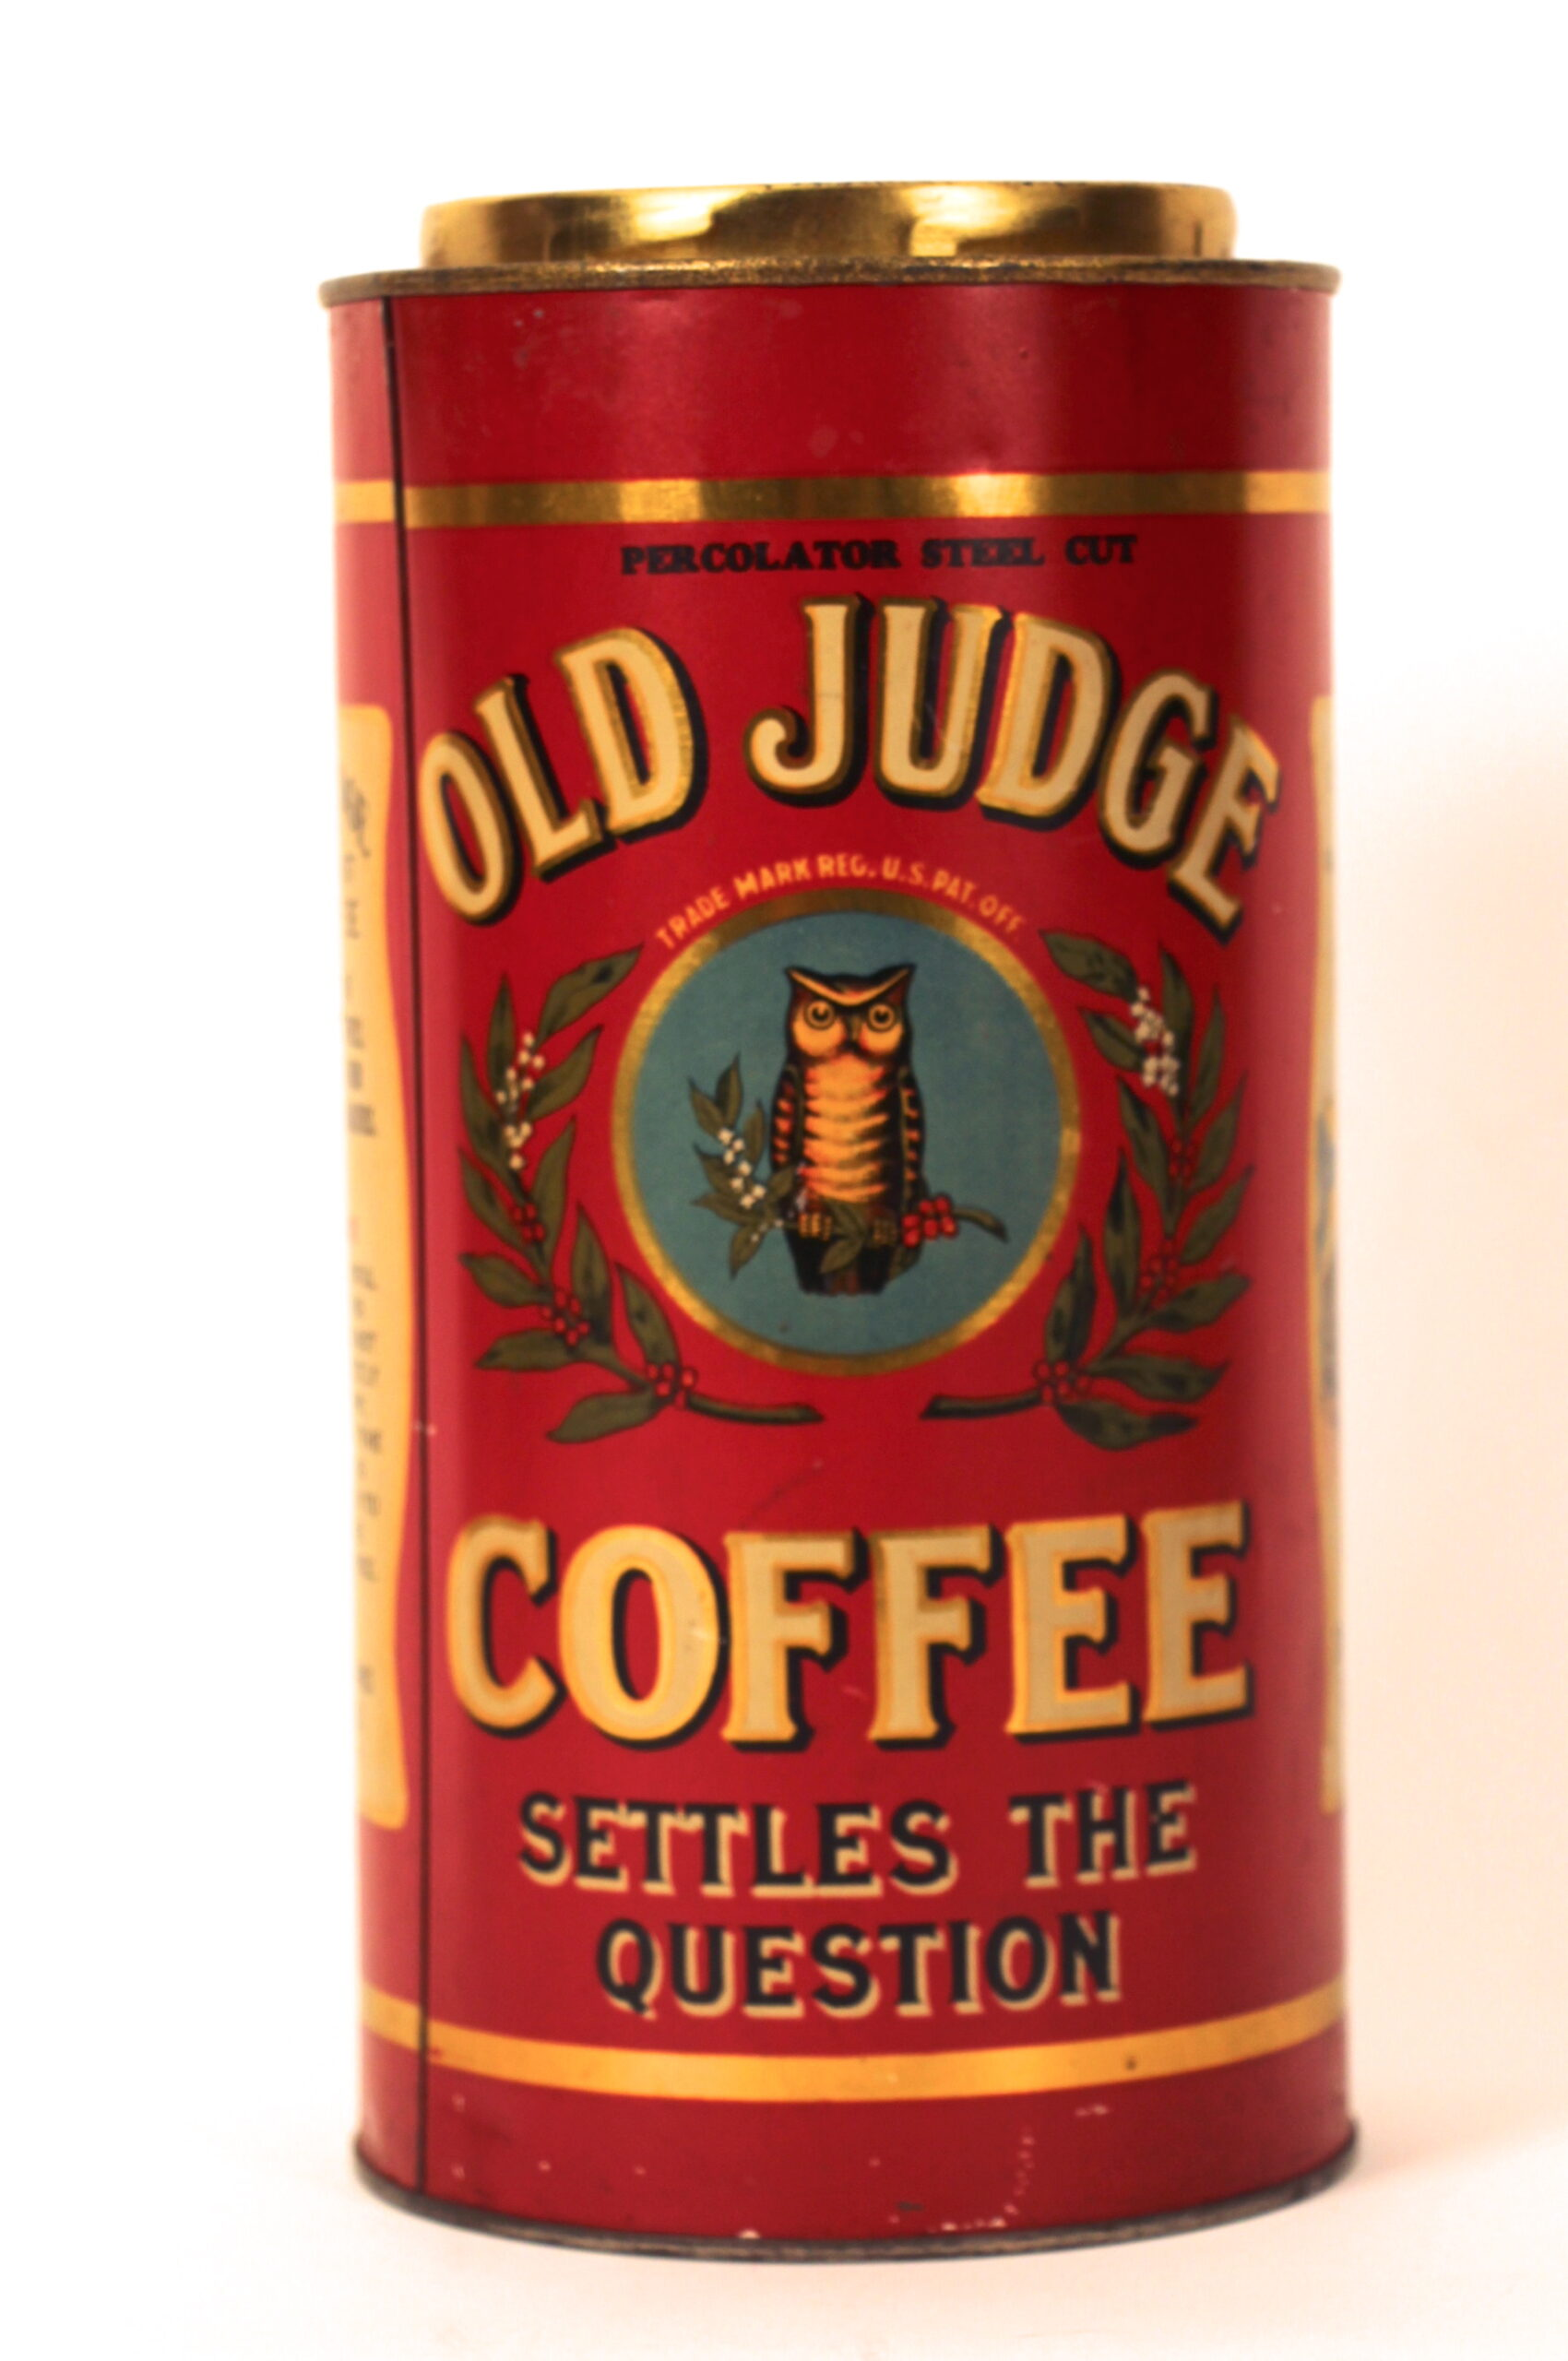 Old Judge Coffee Tin Can, David Evans Coffee Co., St. Louis, MO